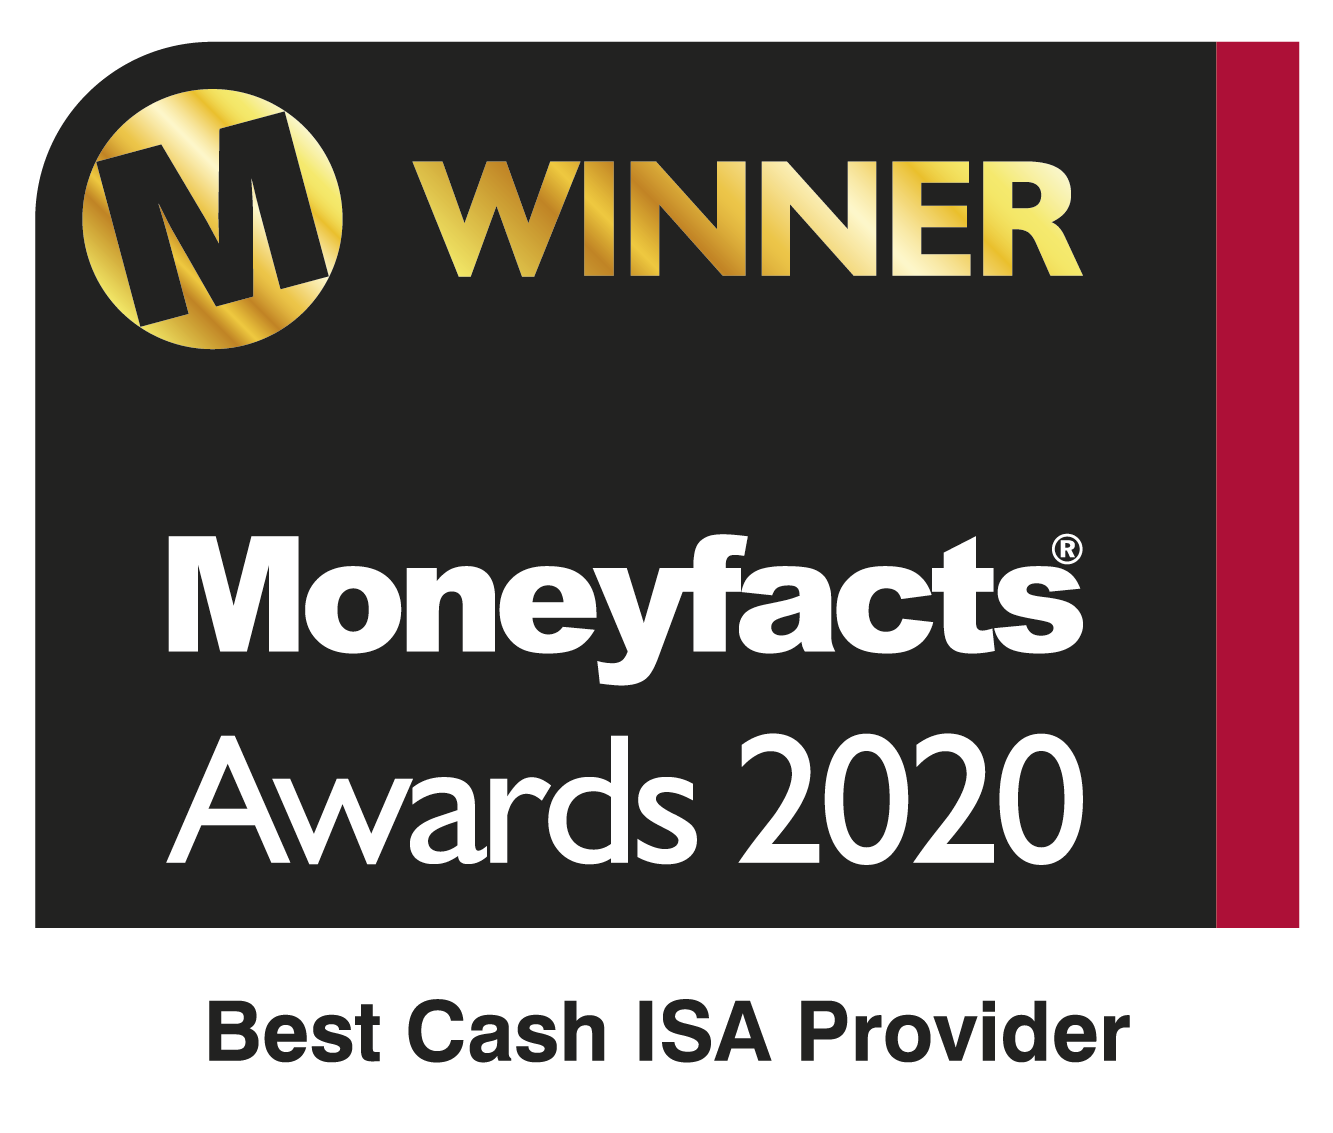 Moneyfacts awards 2019 - Best Cash ISA Provider